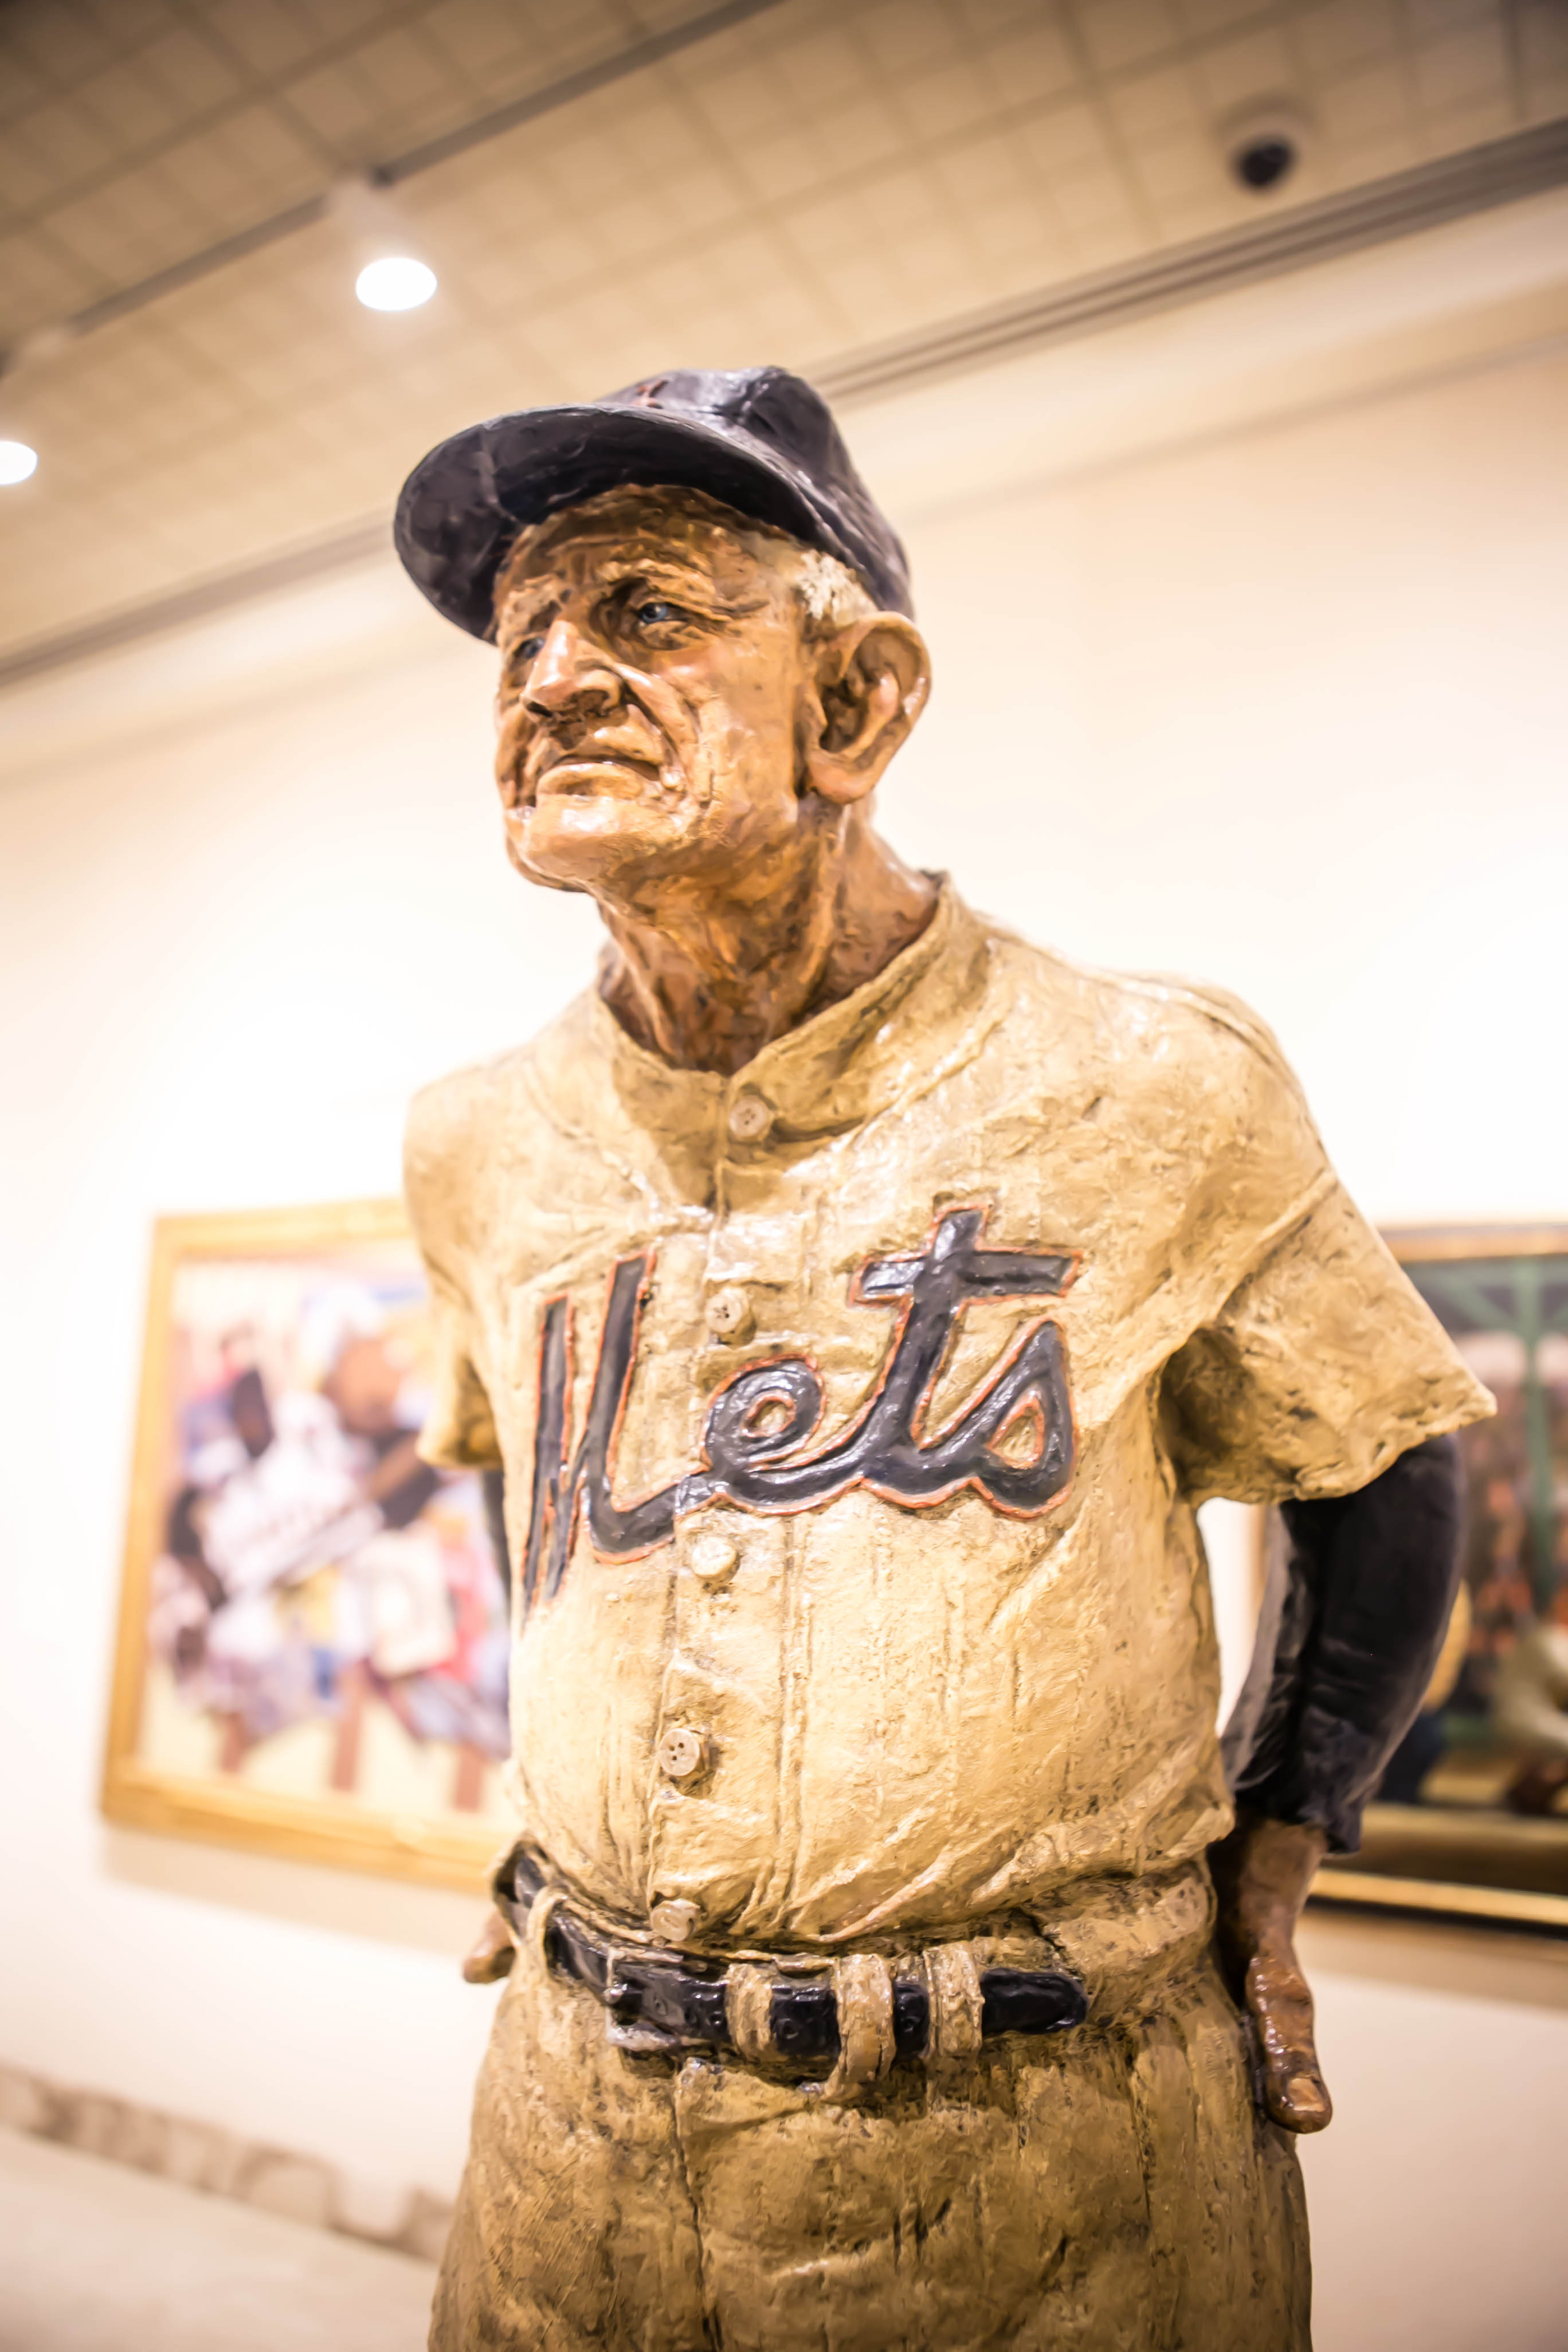 old man in a mets uniform